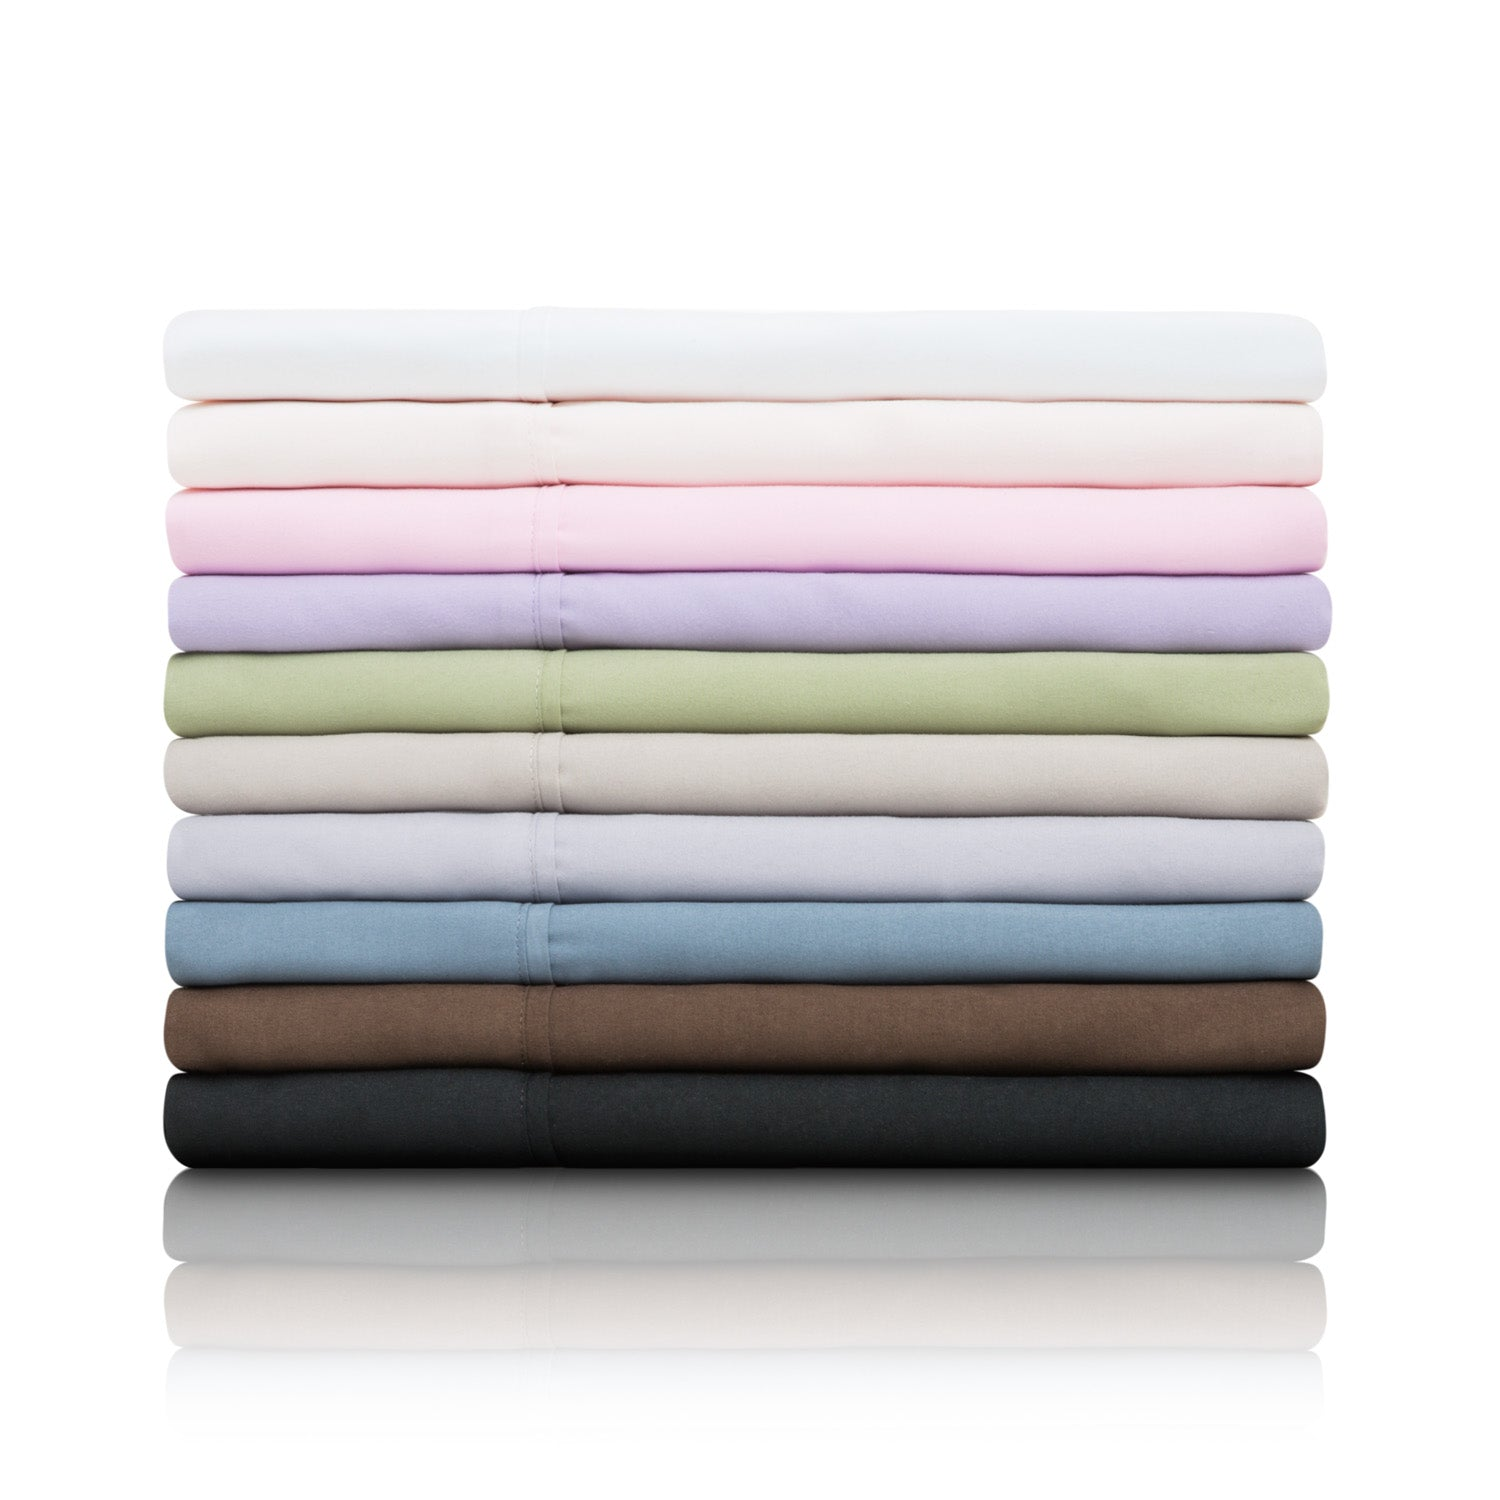 Malouf Woven Brushed Microfiber Pillowcase